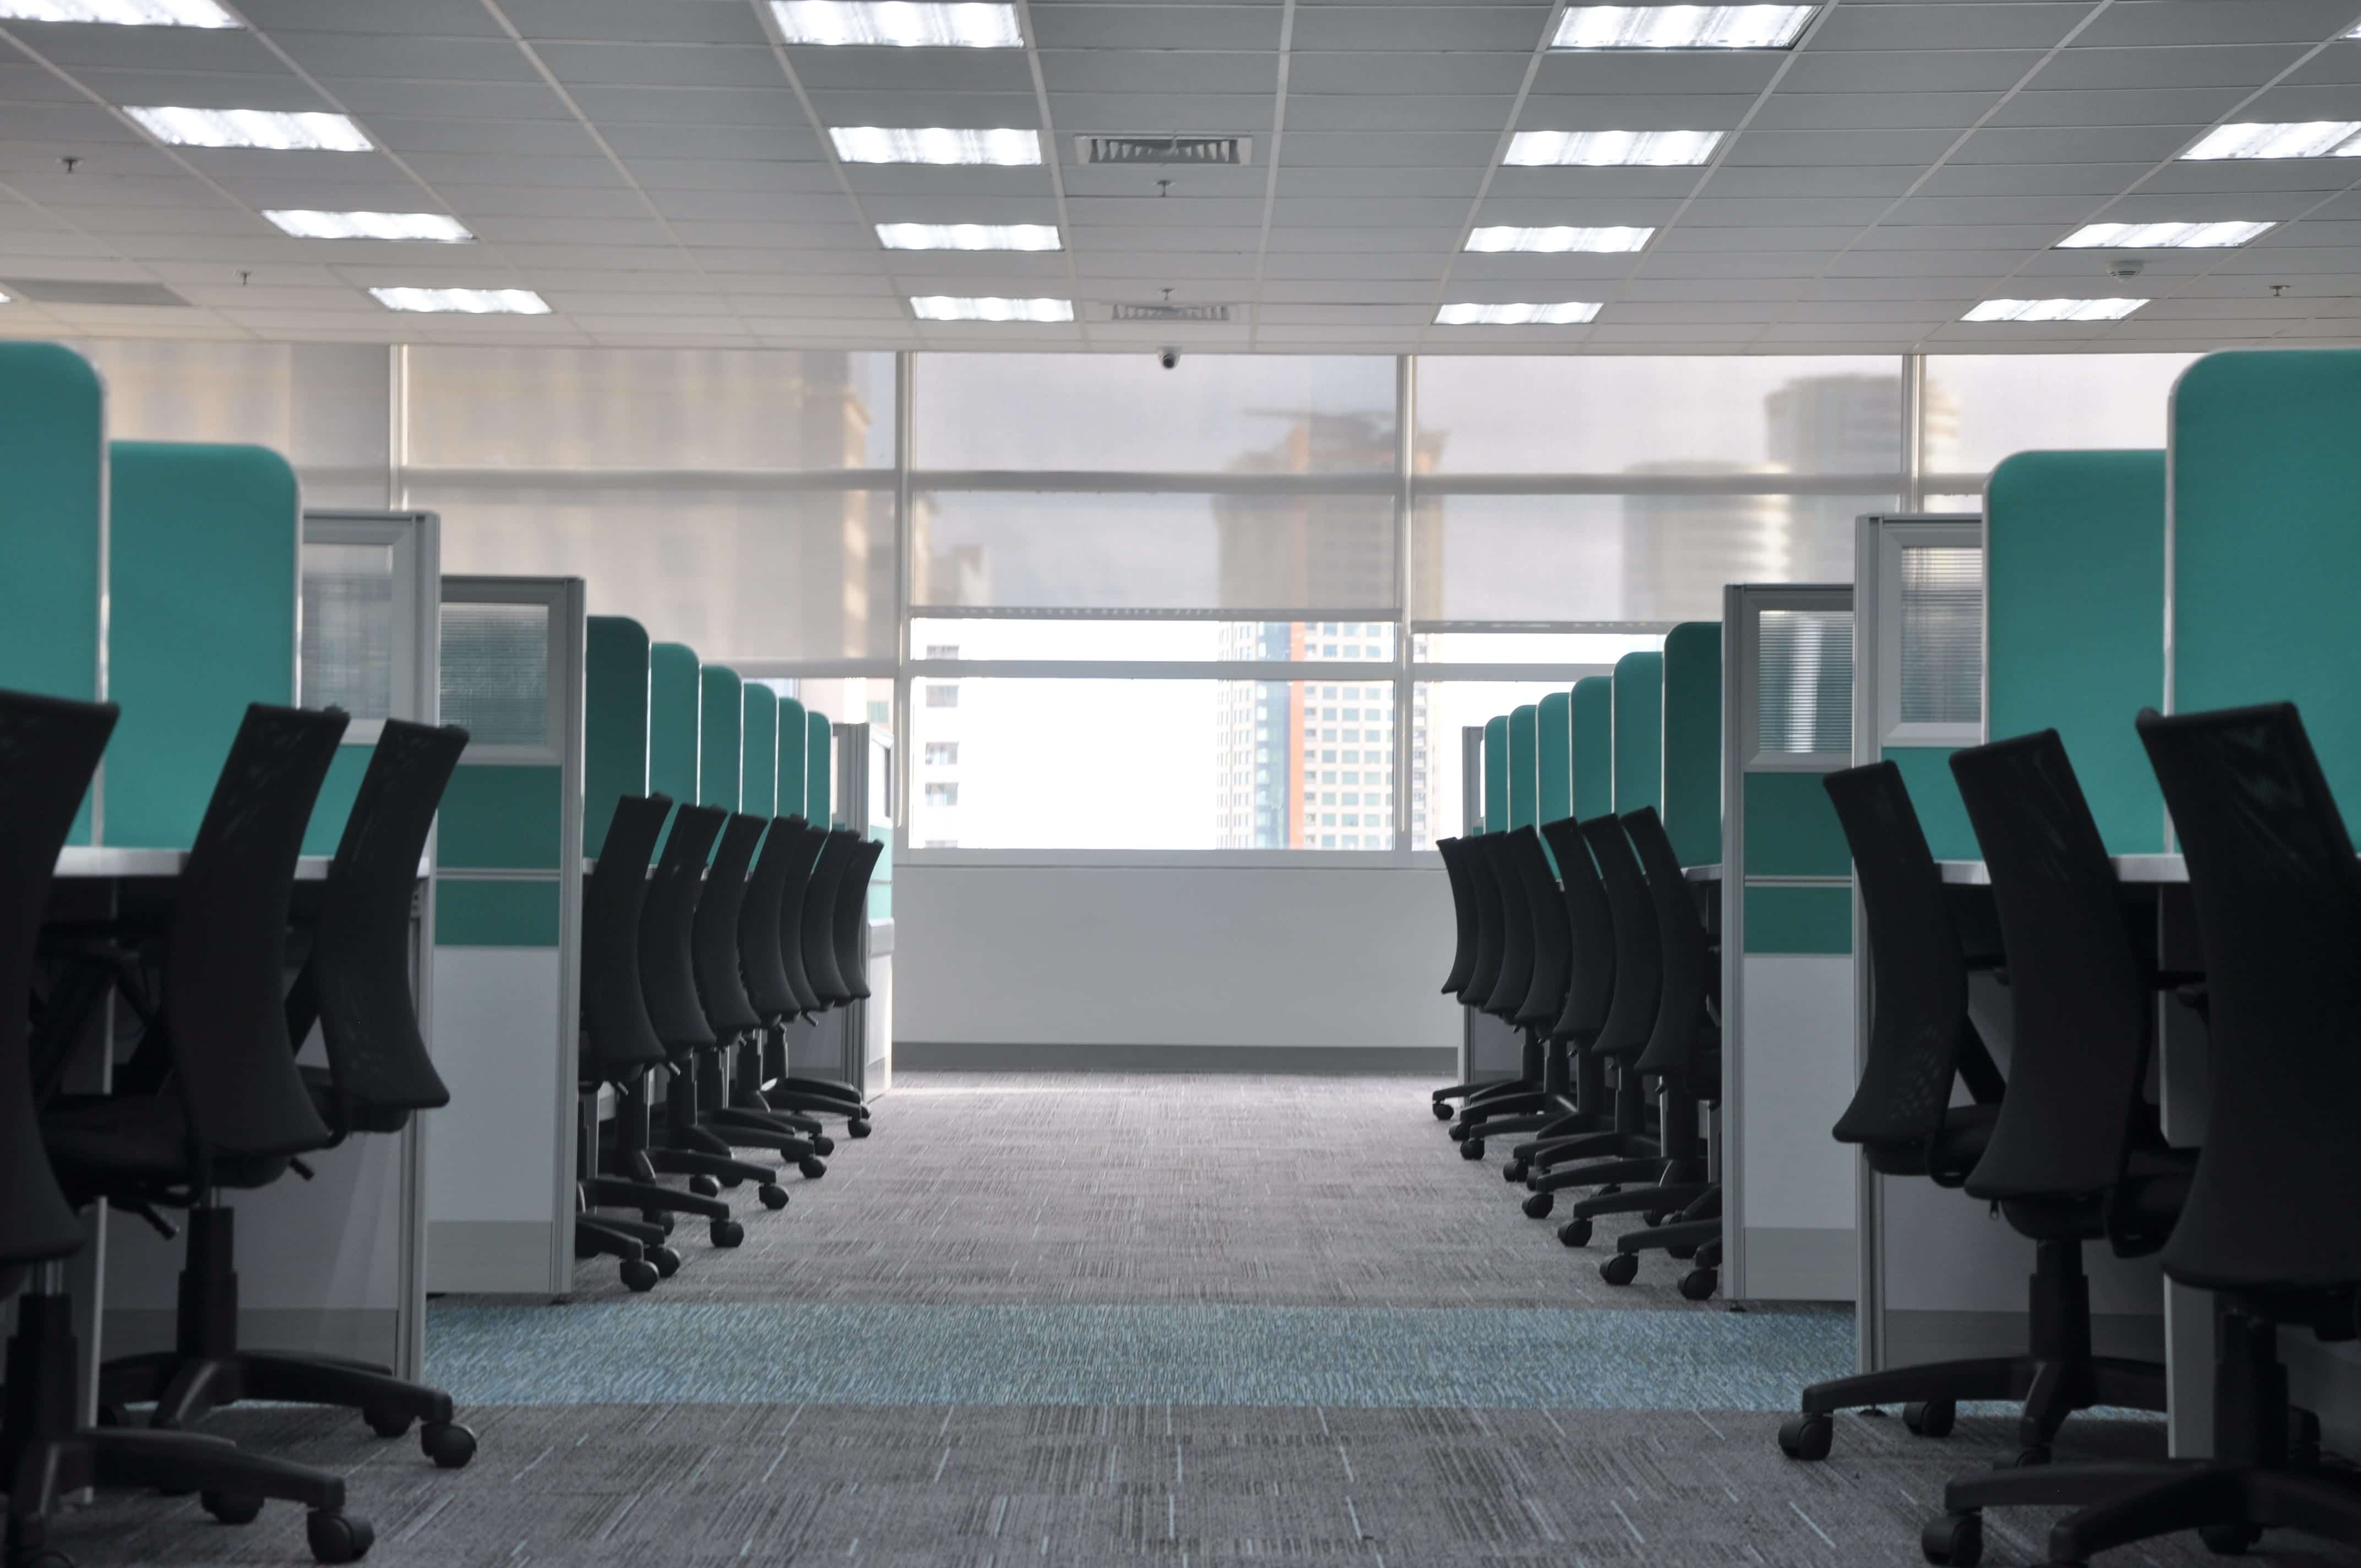 Rows of empty workstations with teal walls and black chairs; image by Kate Sade, via Unsplash.com.